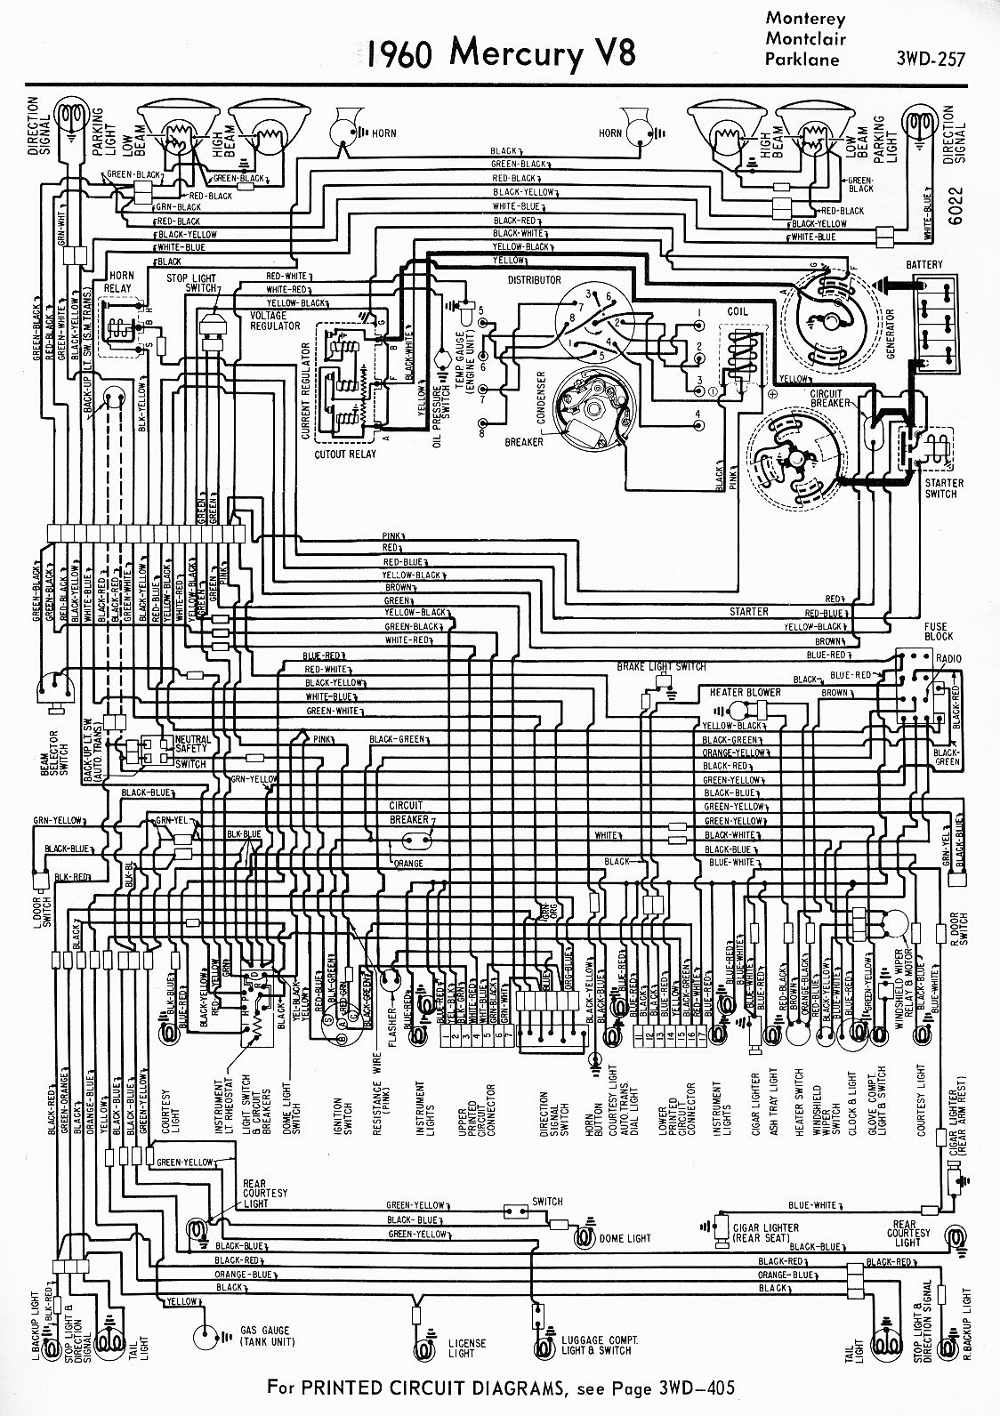 Proa: 1960 Mercury V8 Monterey/Montclair/Parklane Wiring Diagram on db9 connector diagram, db9 cable, rj45 pinout diagram, db9 pinout, usb to serial pinout diagram,